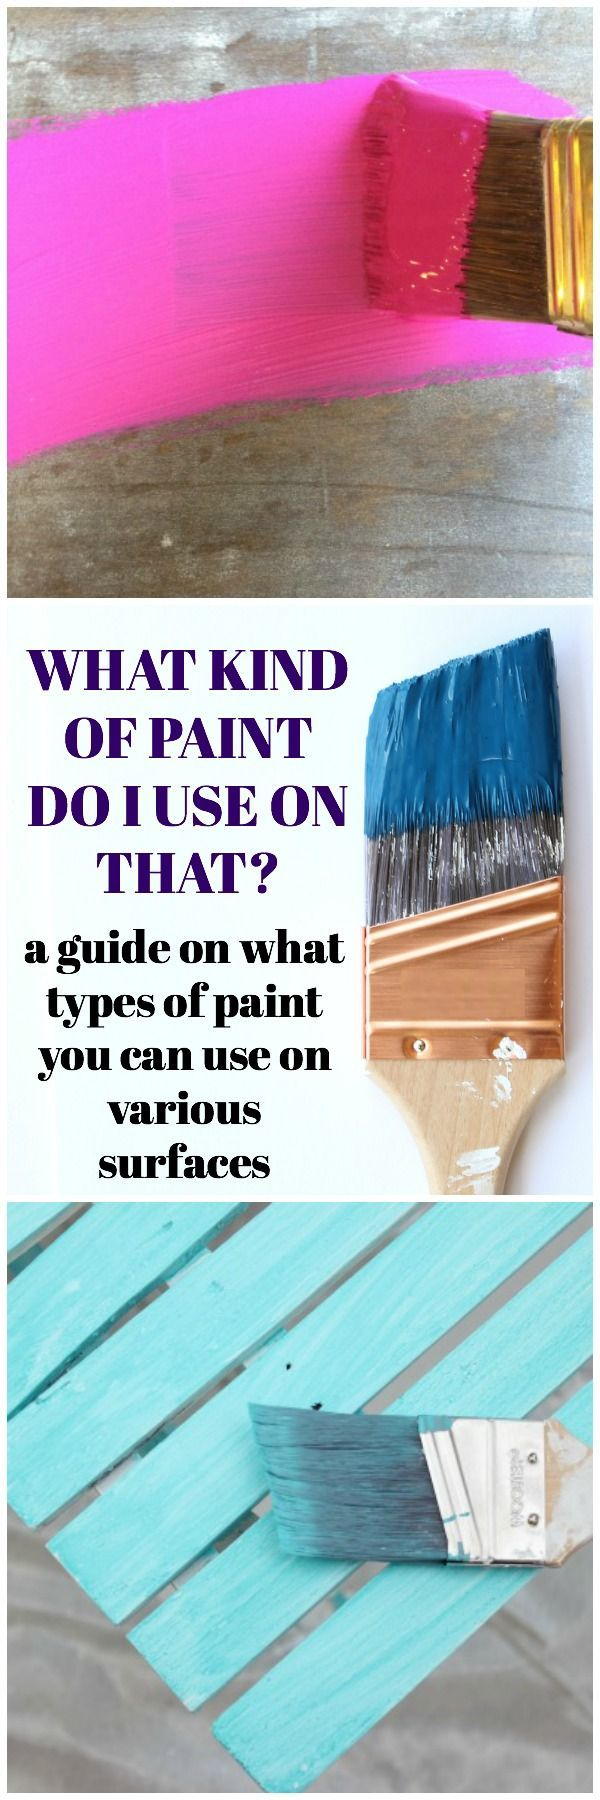 what kind of paint do you use on kitchen cabinets what of paint do i use on that a guide to what types 28321